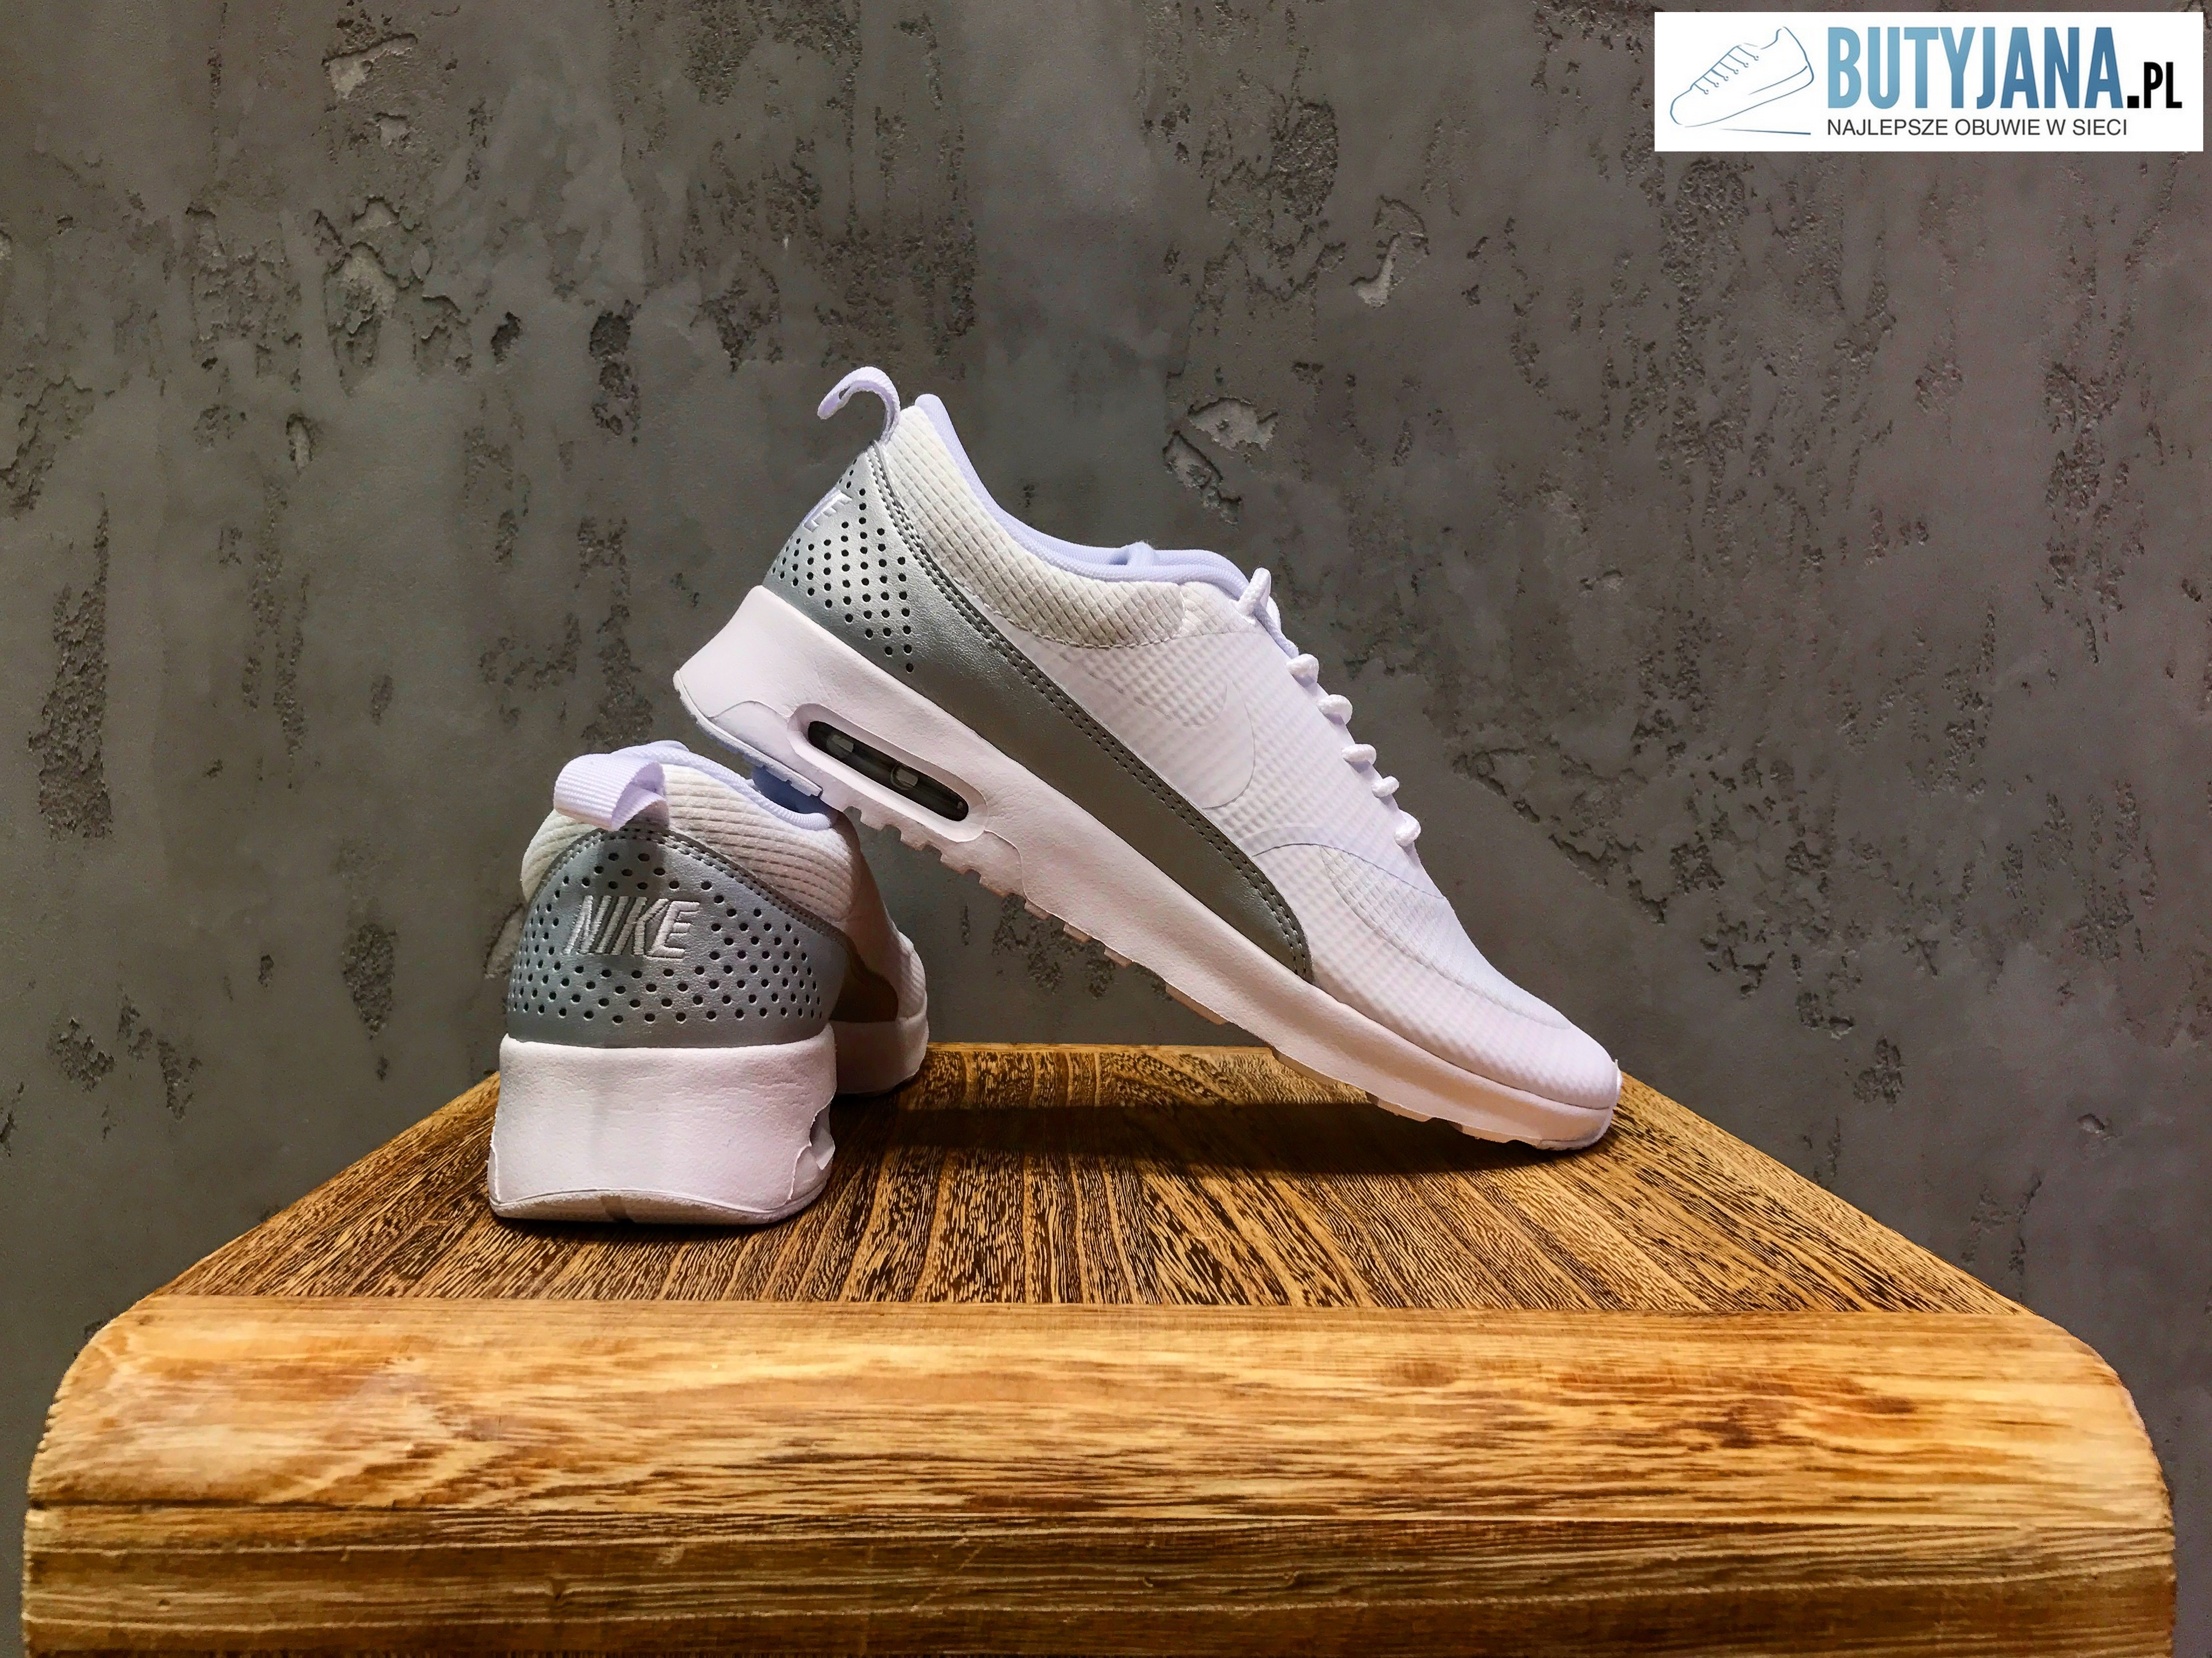 check out ed654 beb1e Damskie buty Nike Air Max Thea w promocji!